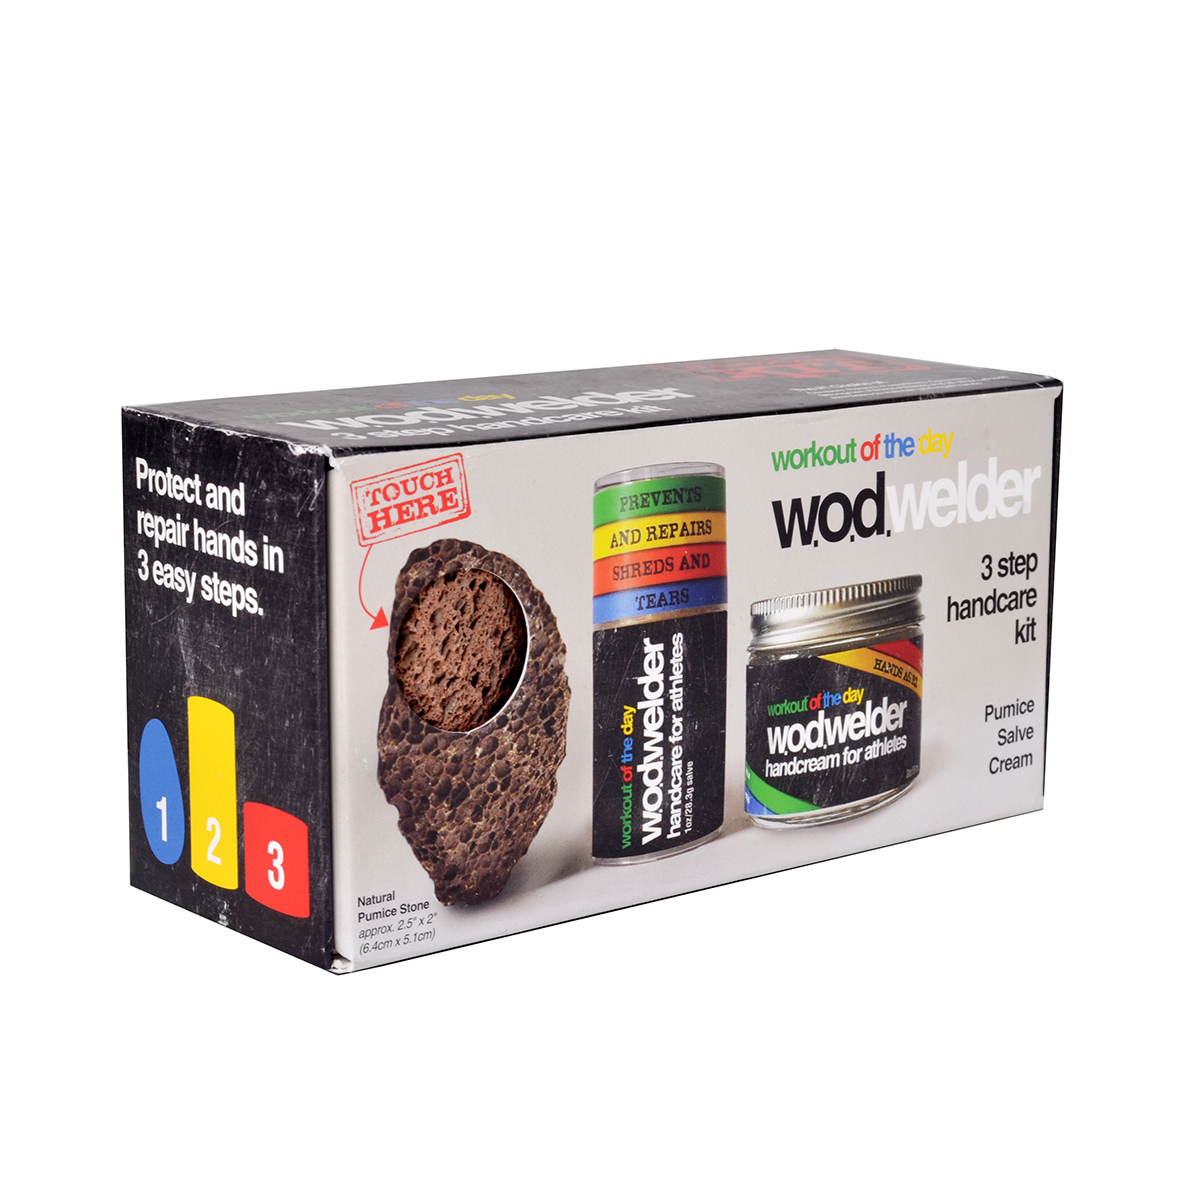 WOD Welder Products